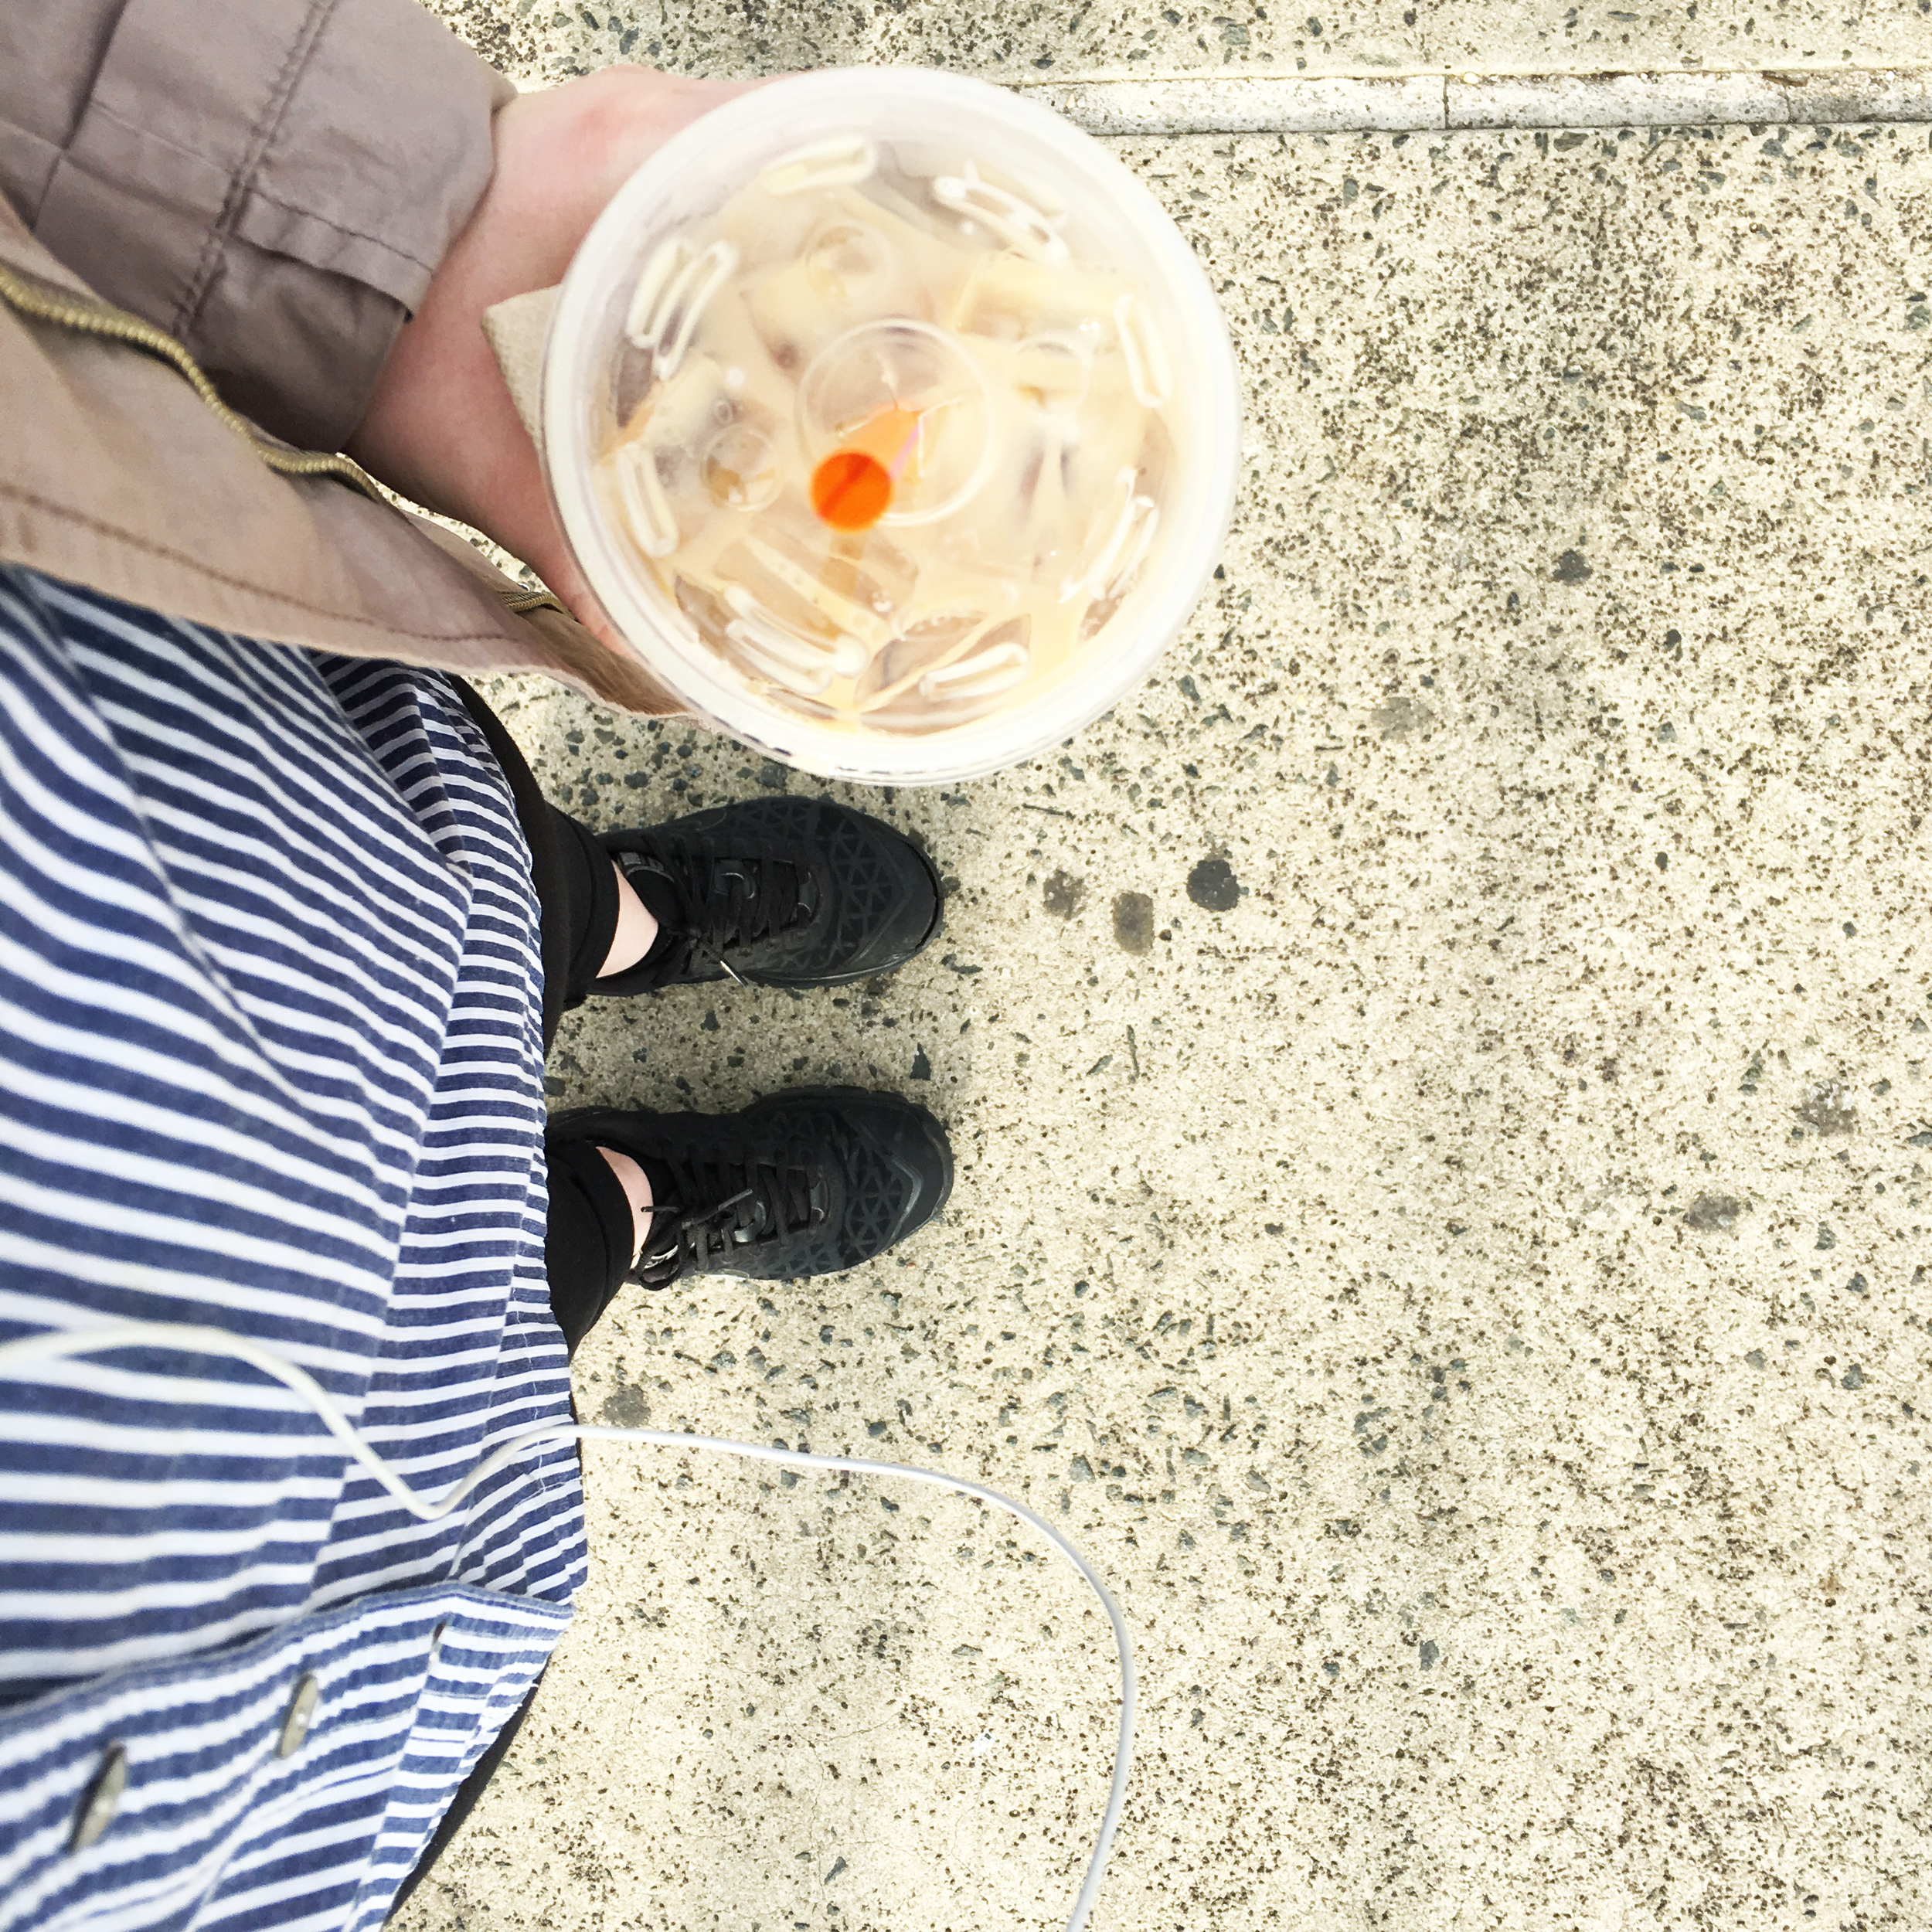 The daily coffee - Iced Caramel, Extra Milk. And waiting for the train today, not sprinting to catch it before the doors close - a nice change of pace